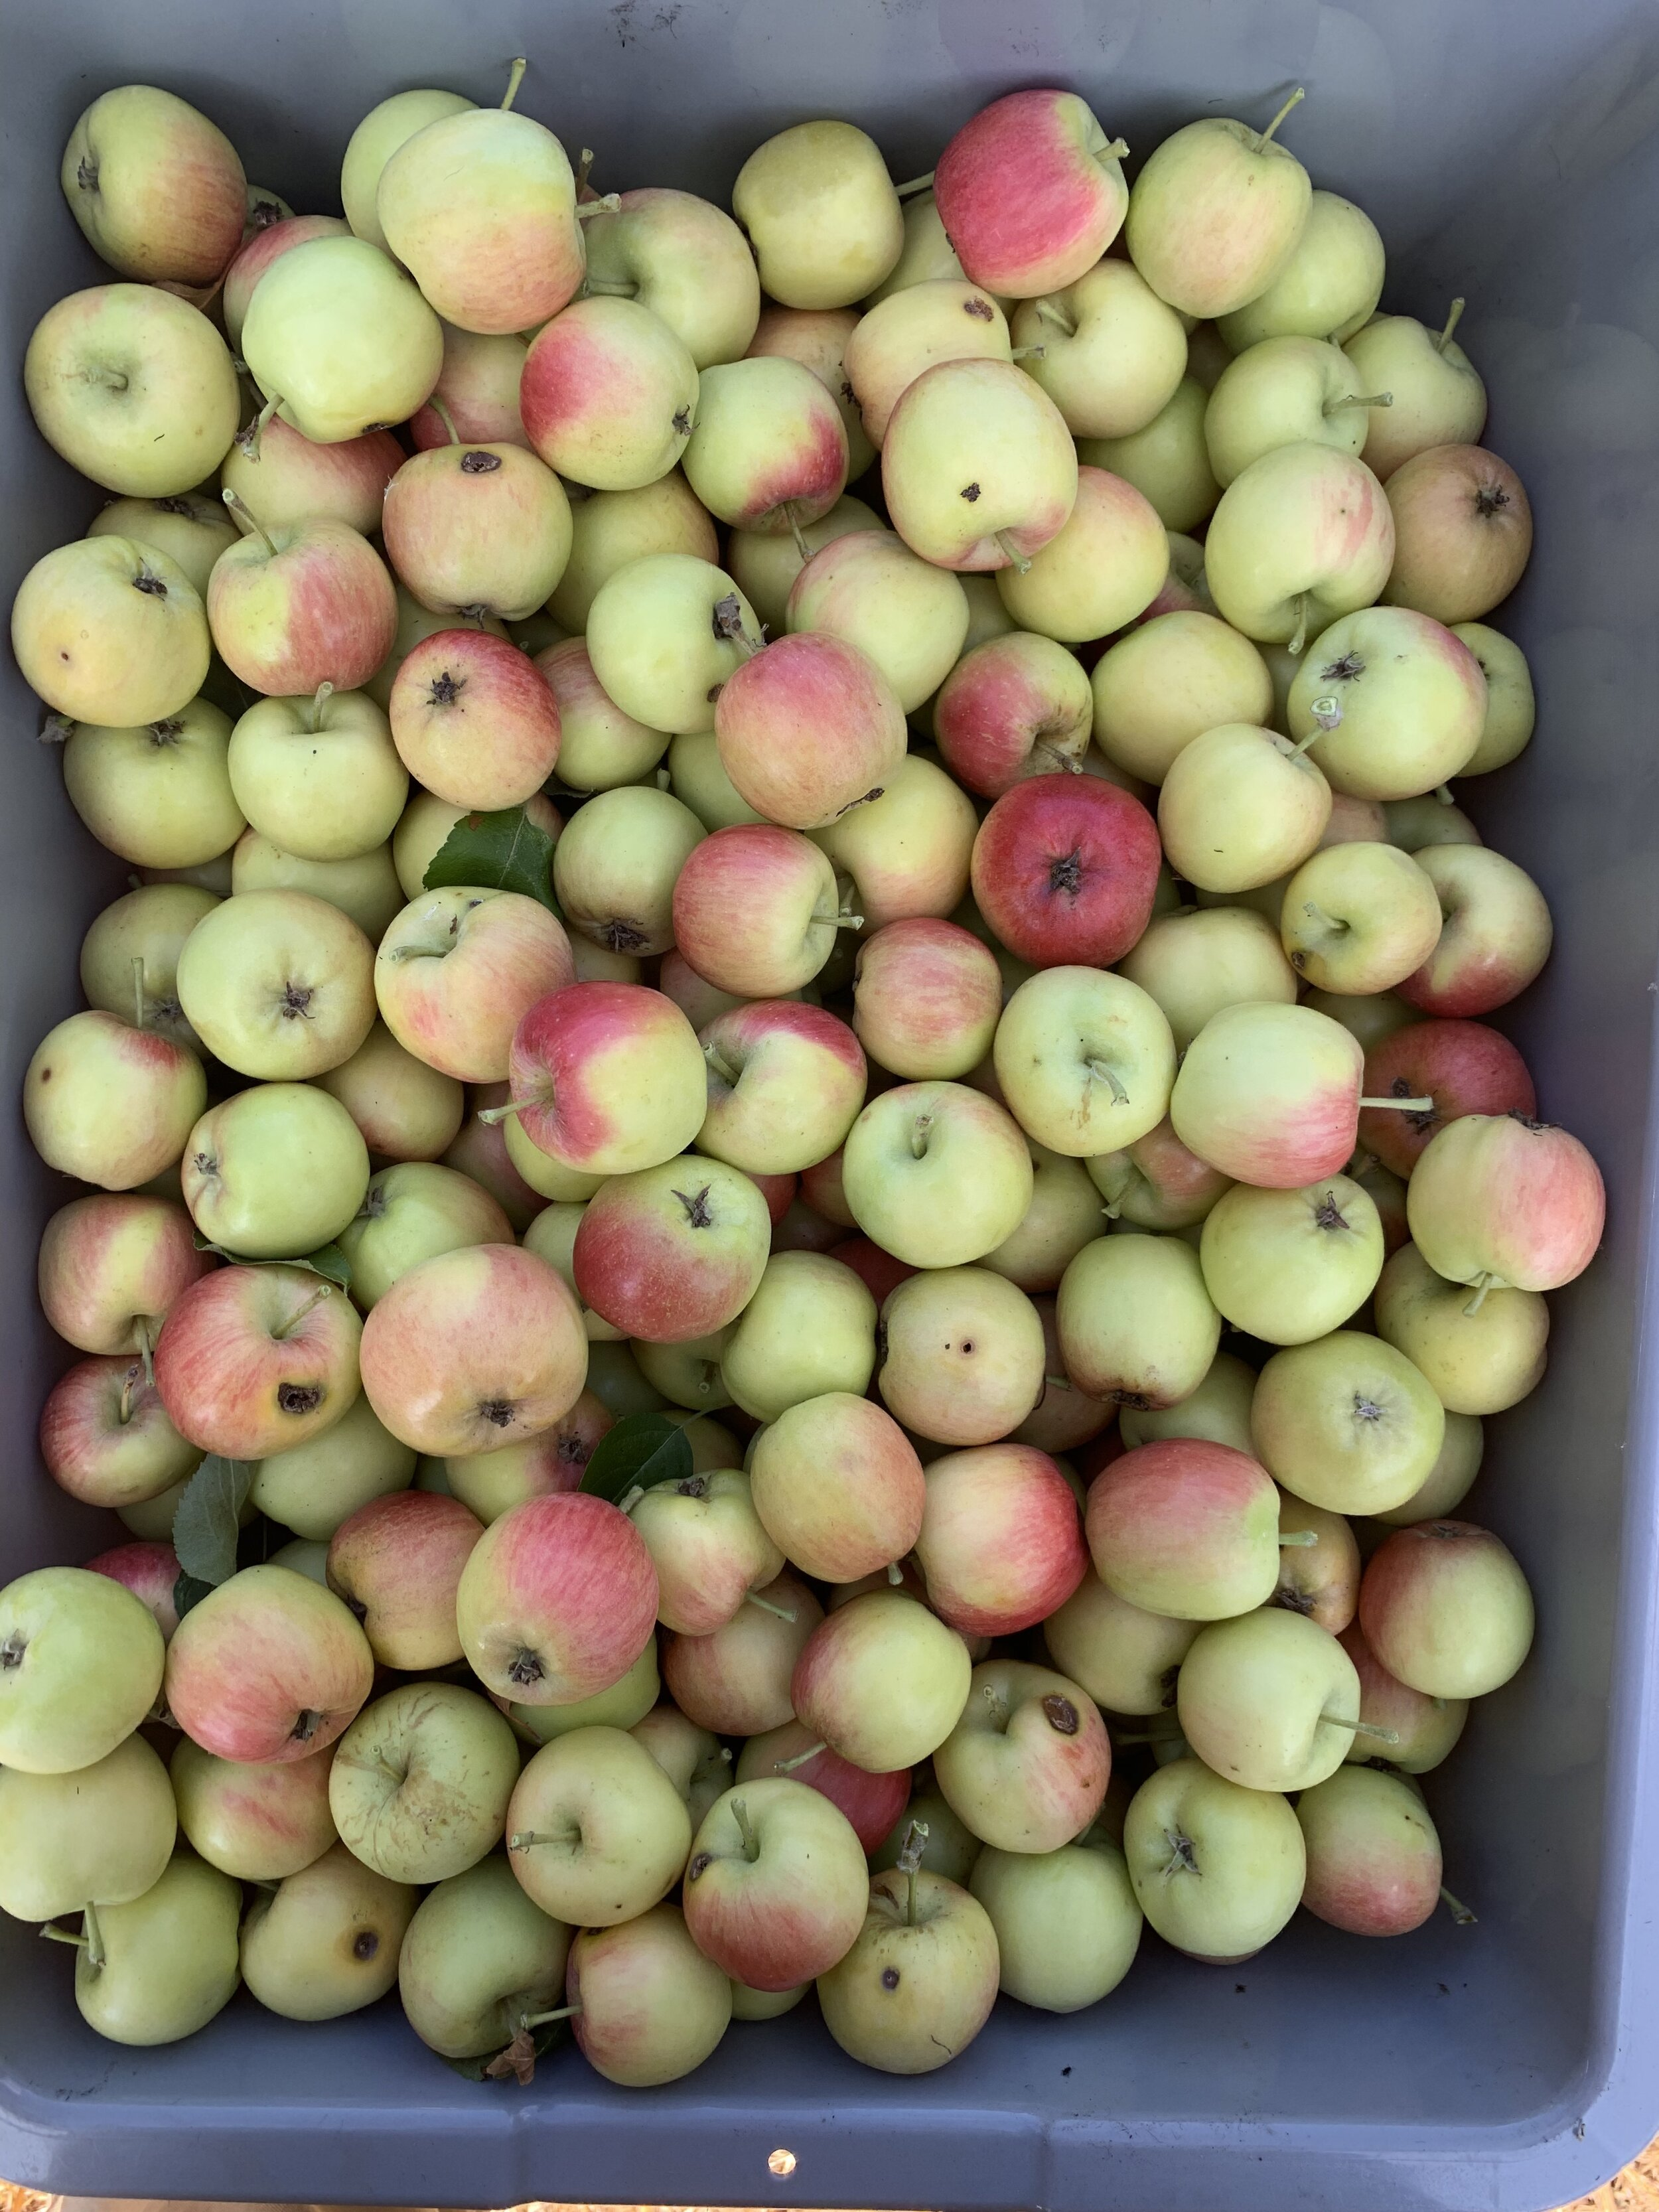 BD farm apples show up on the autumn menu with cider vinegar vinaigrettes, savory gastriques, jams, syrup, and baked in pies